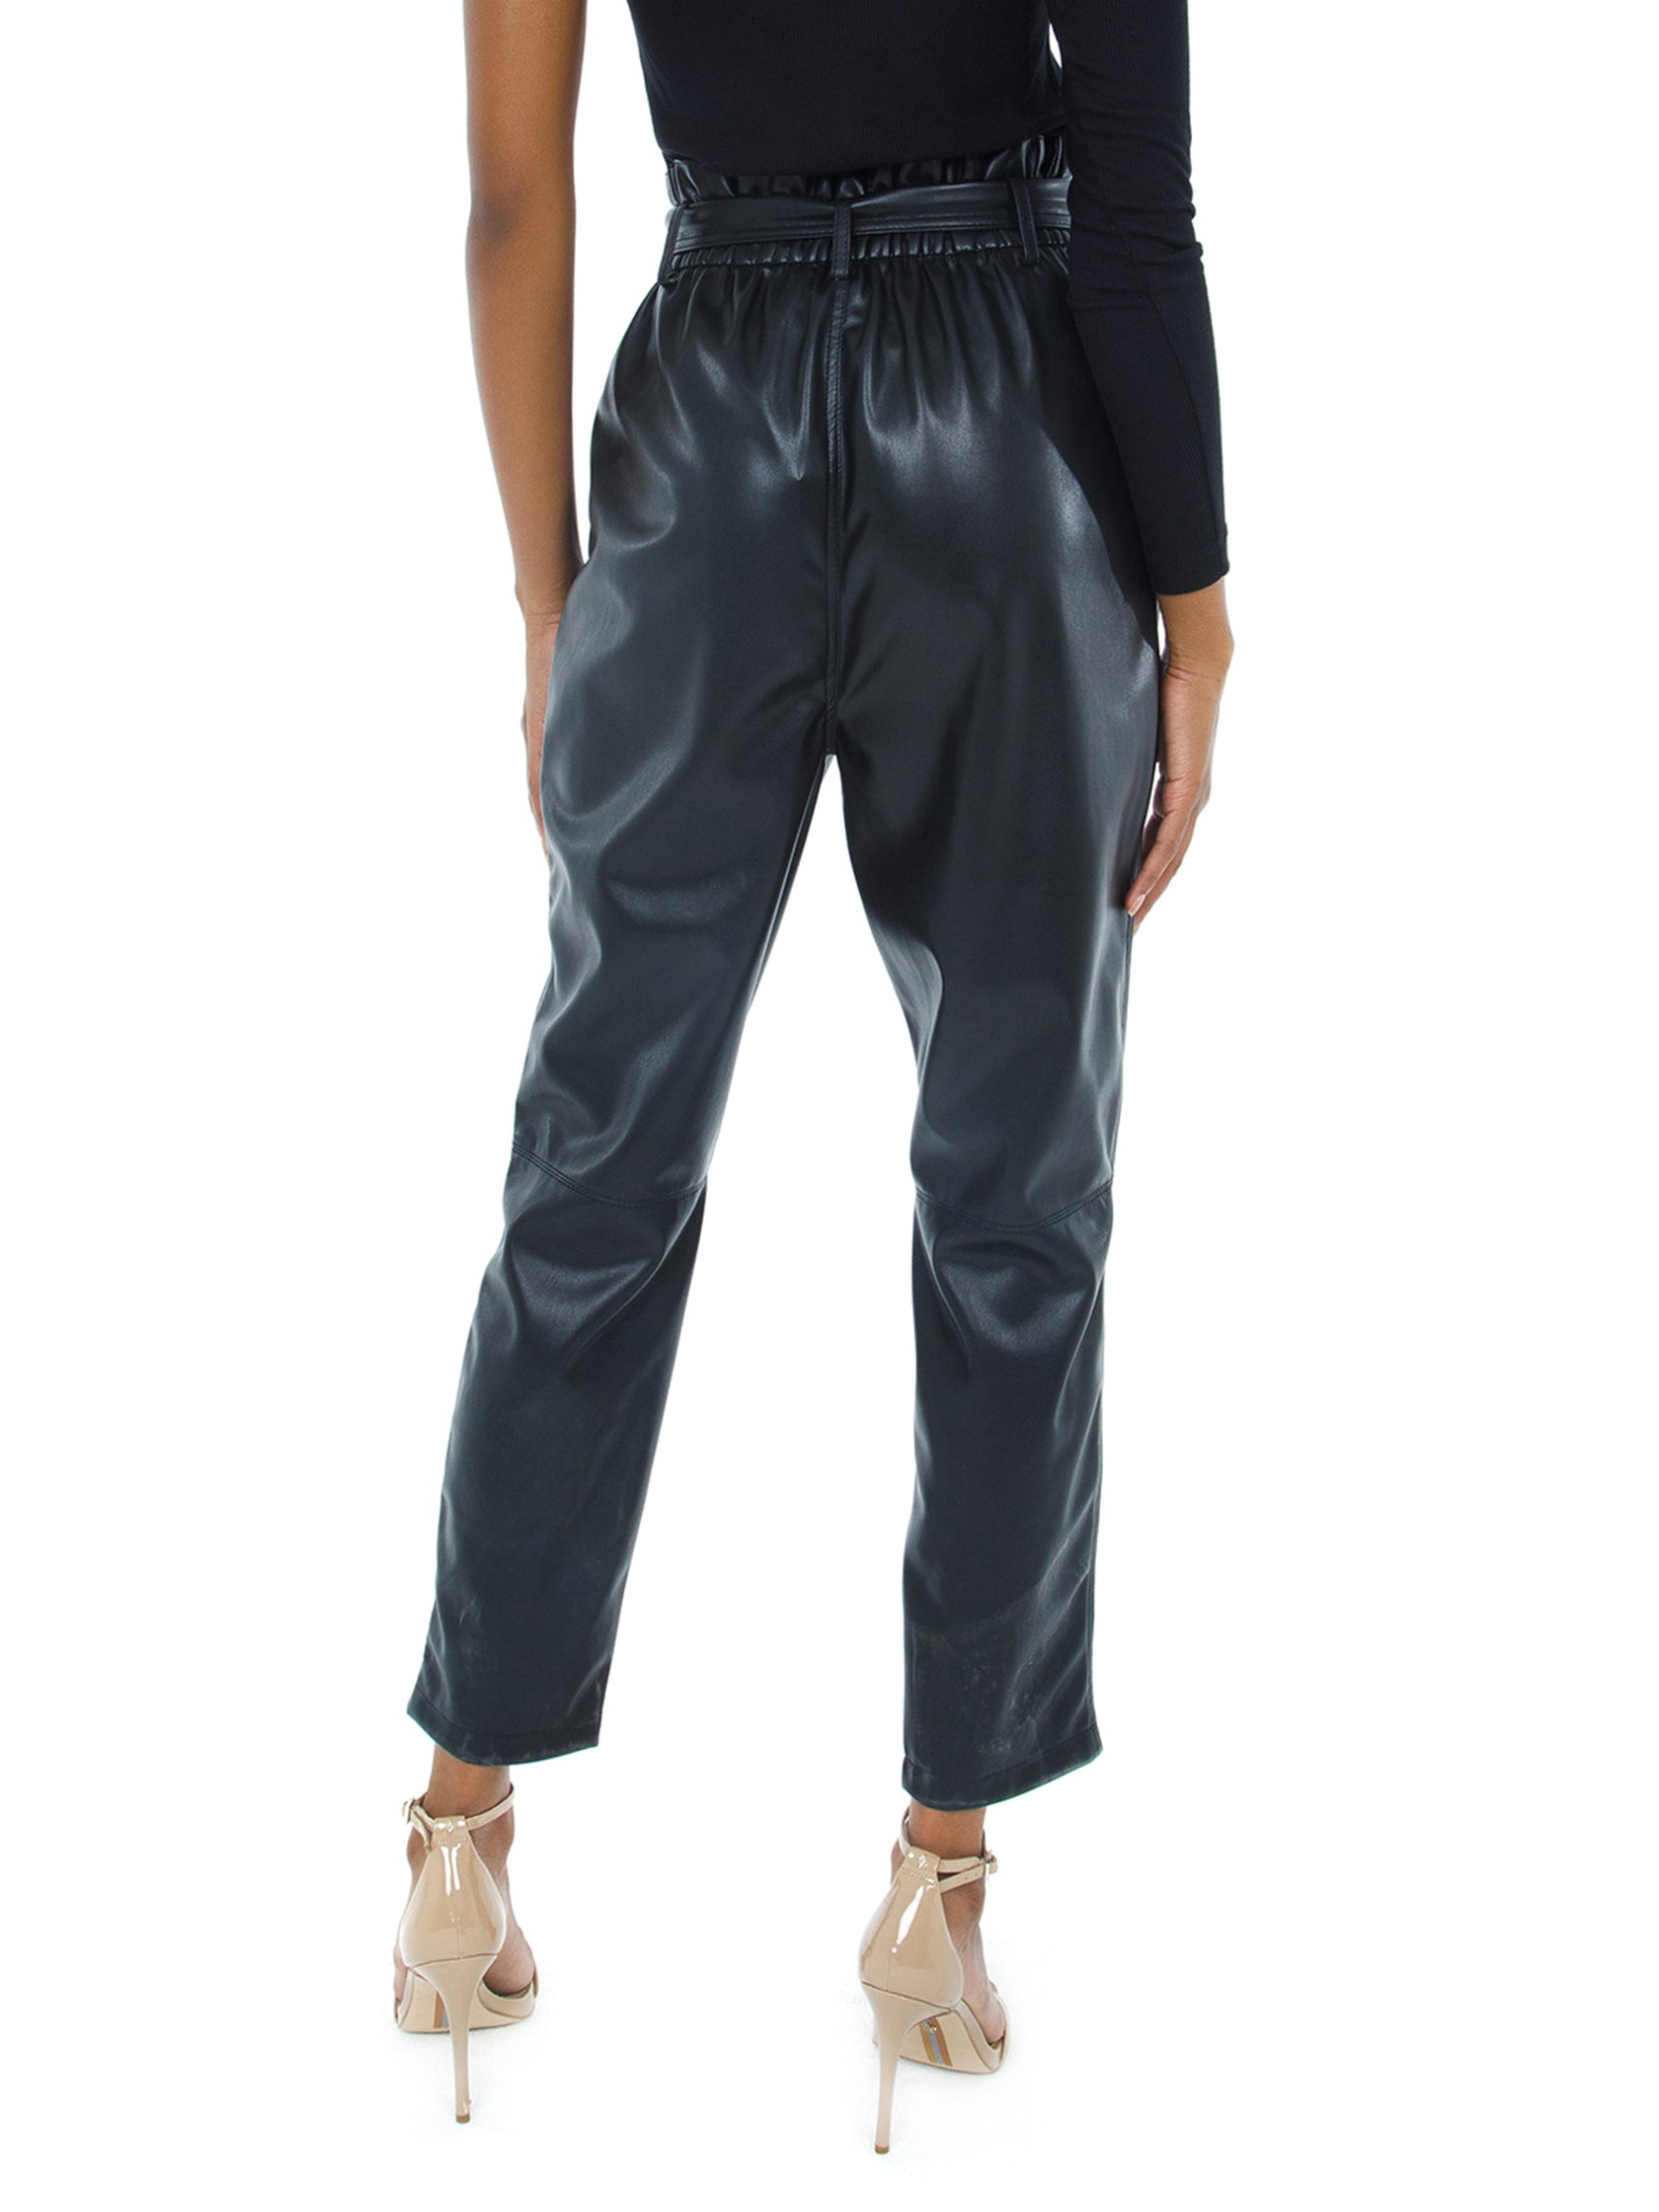 Women outfit in a pants rental from BB Dakota called Faux My Darling Pant